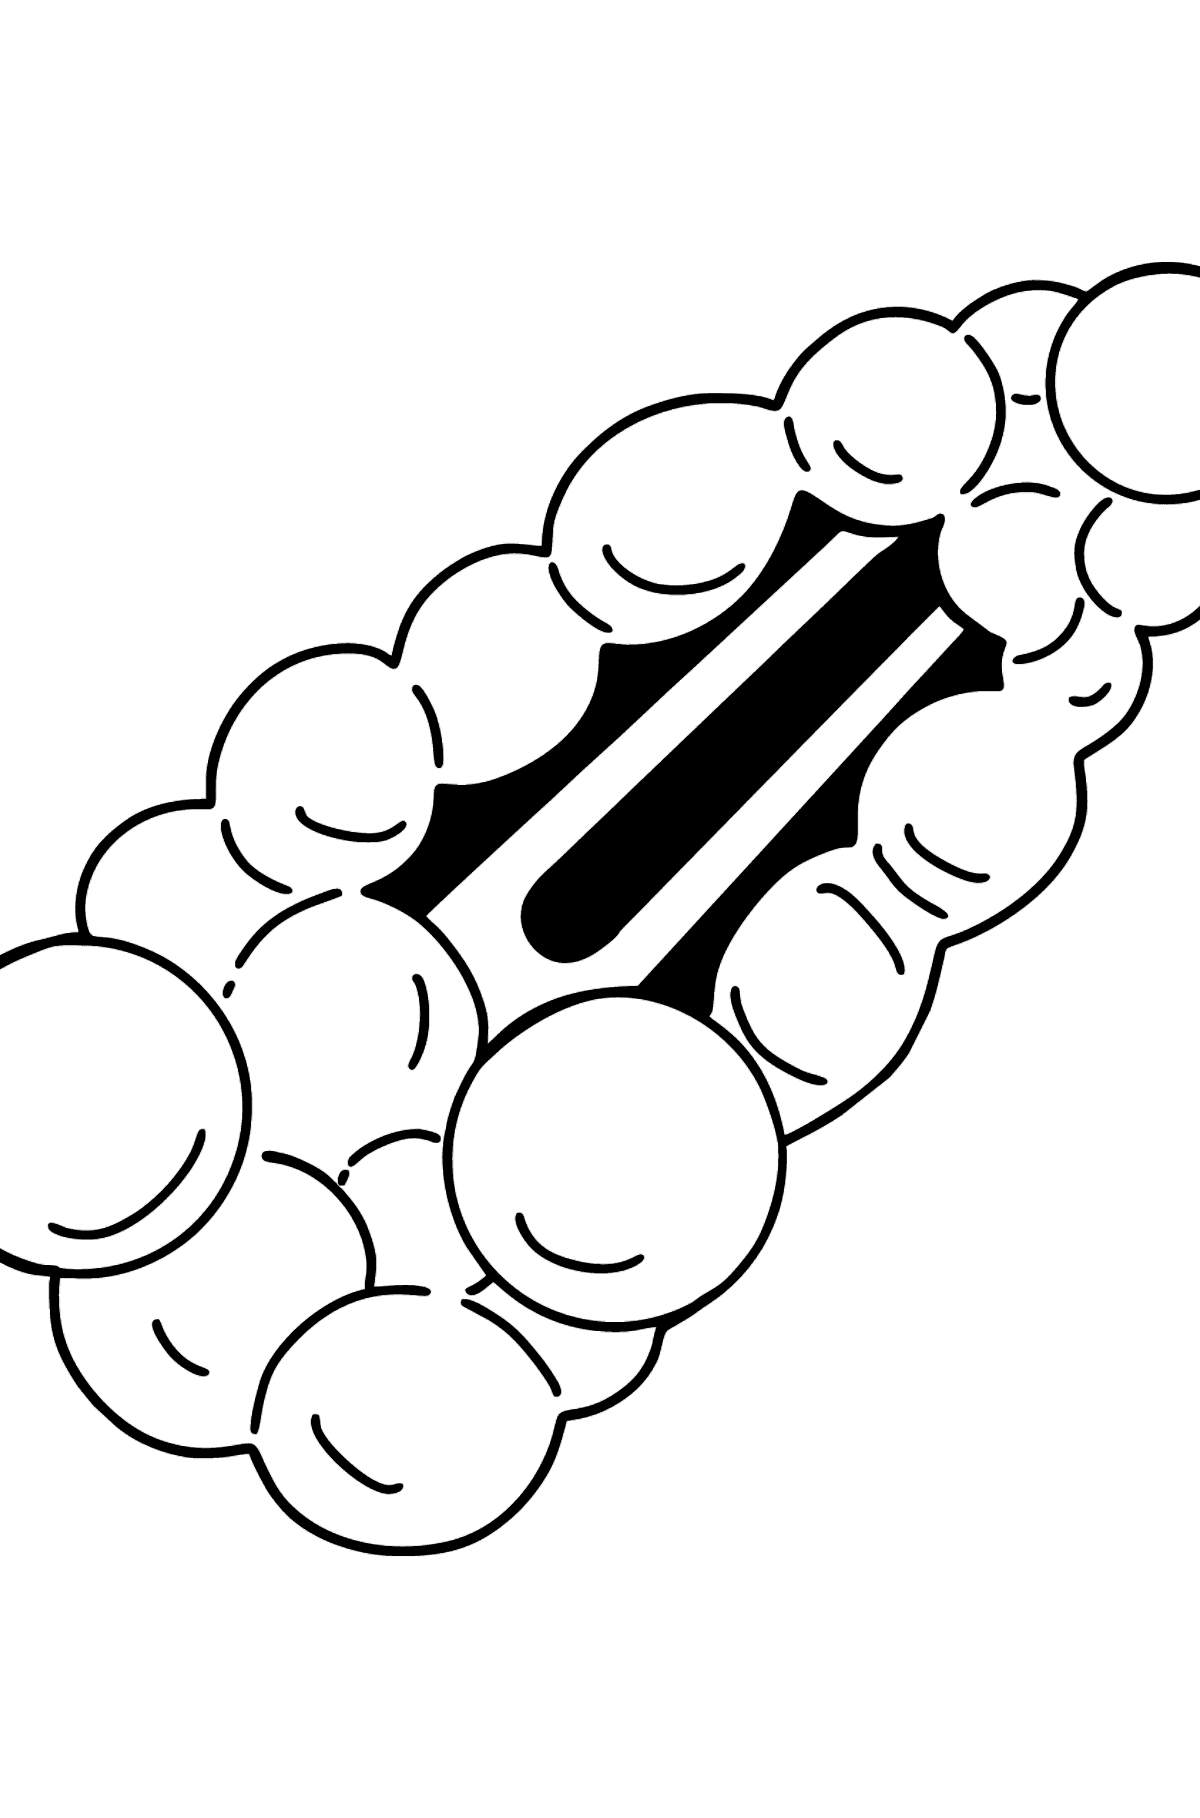 Barrette coloring page - Coloring Pages for Kids